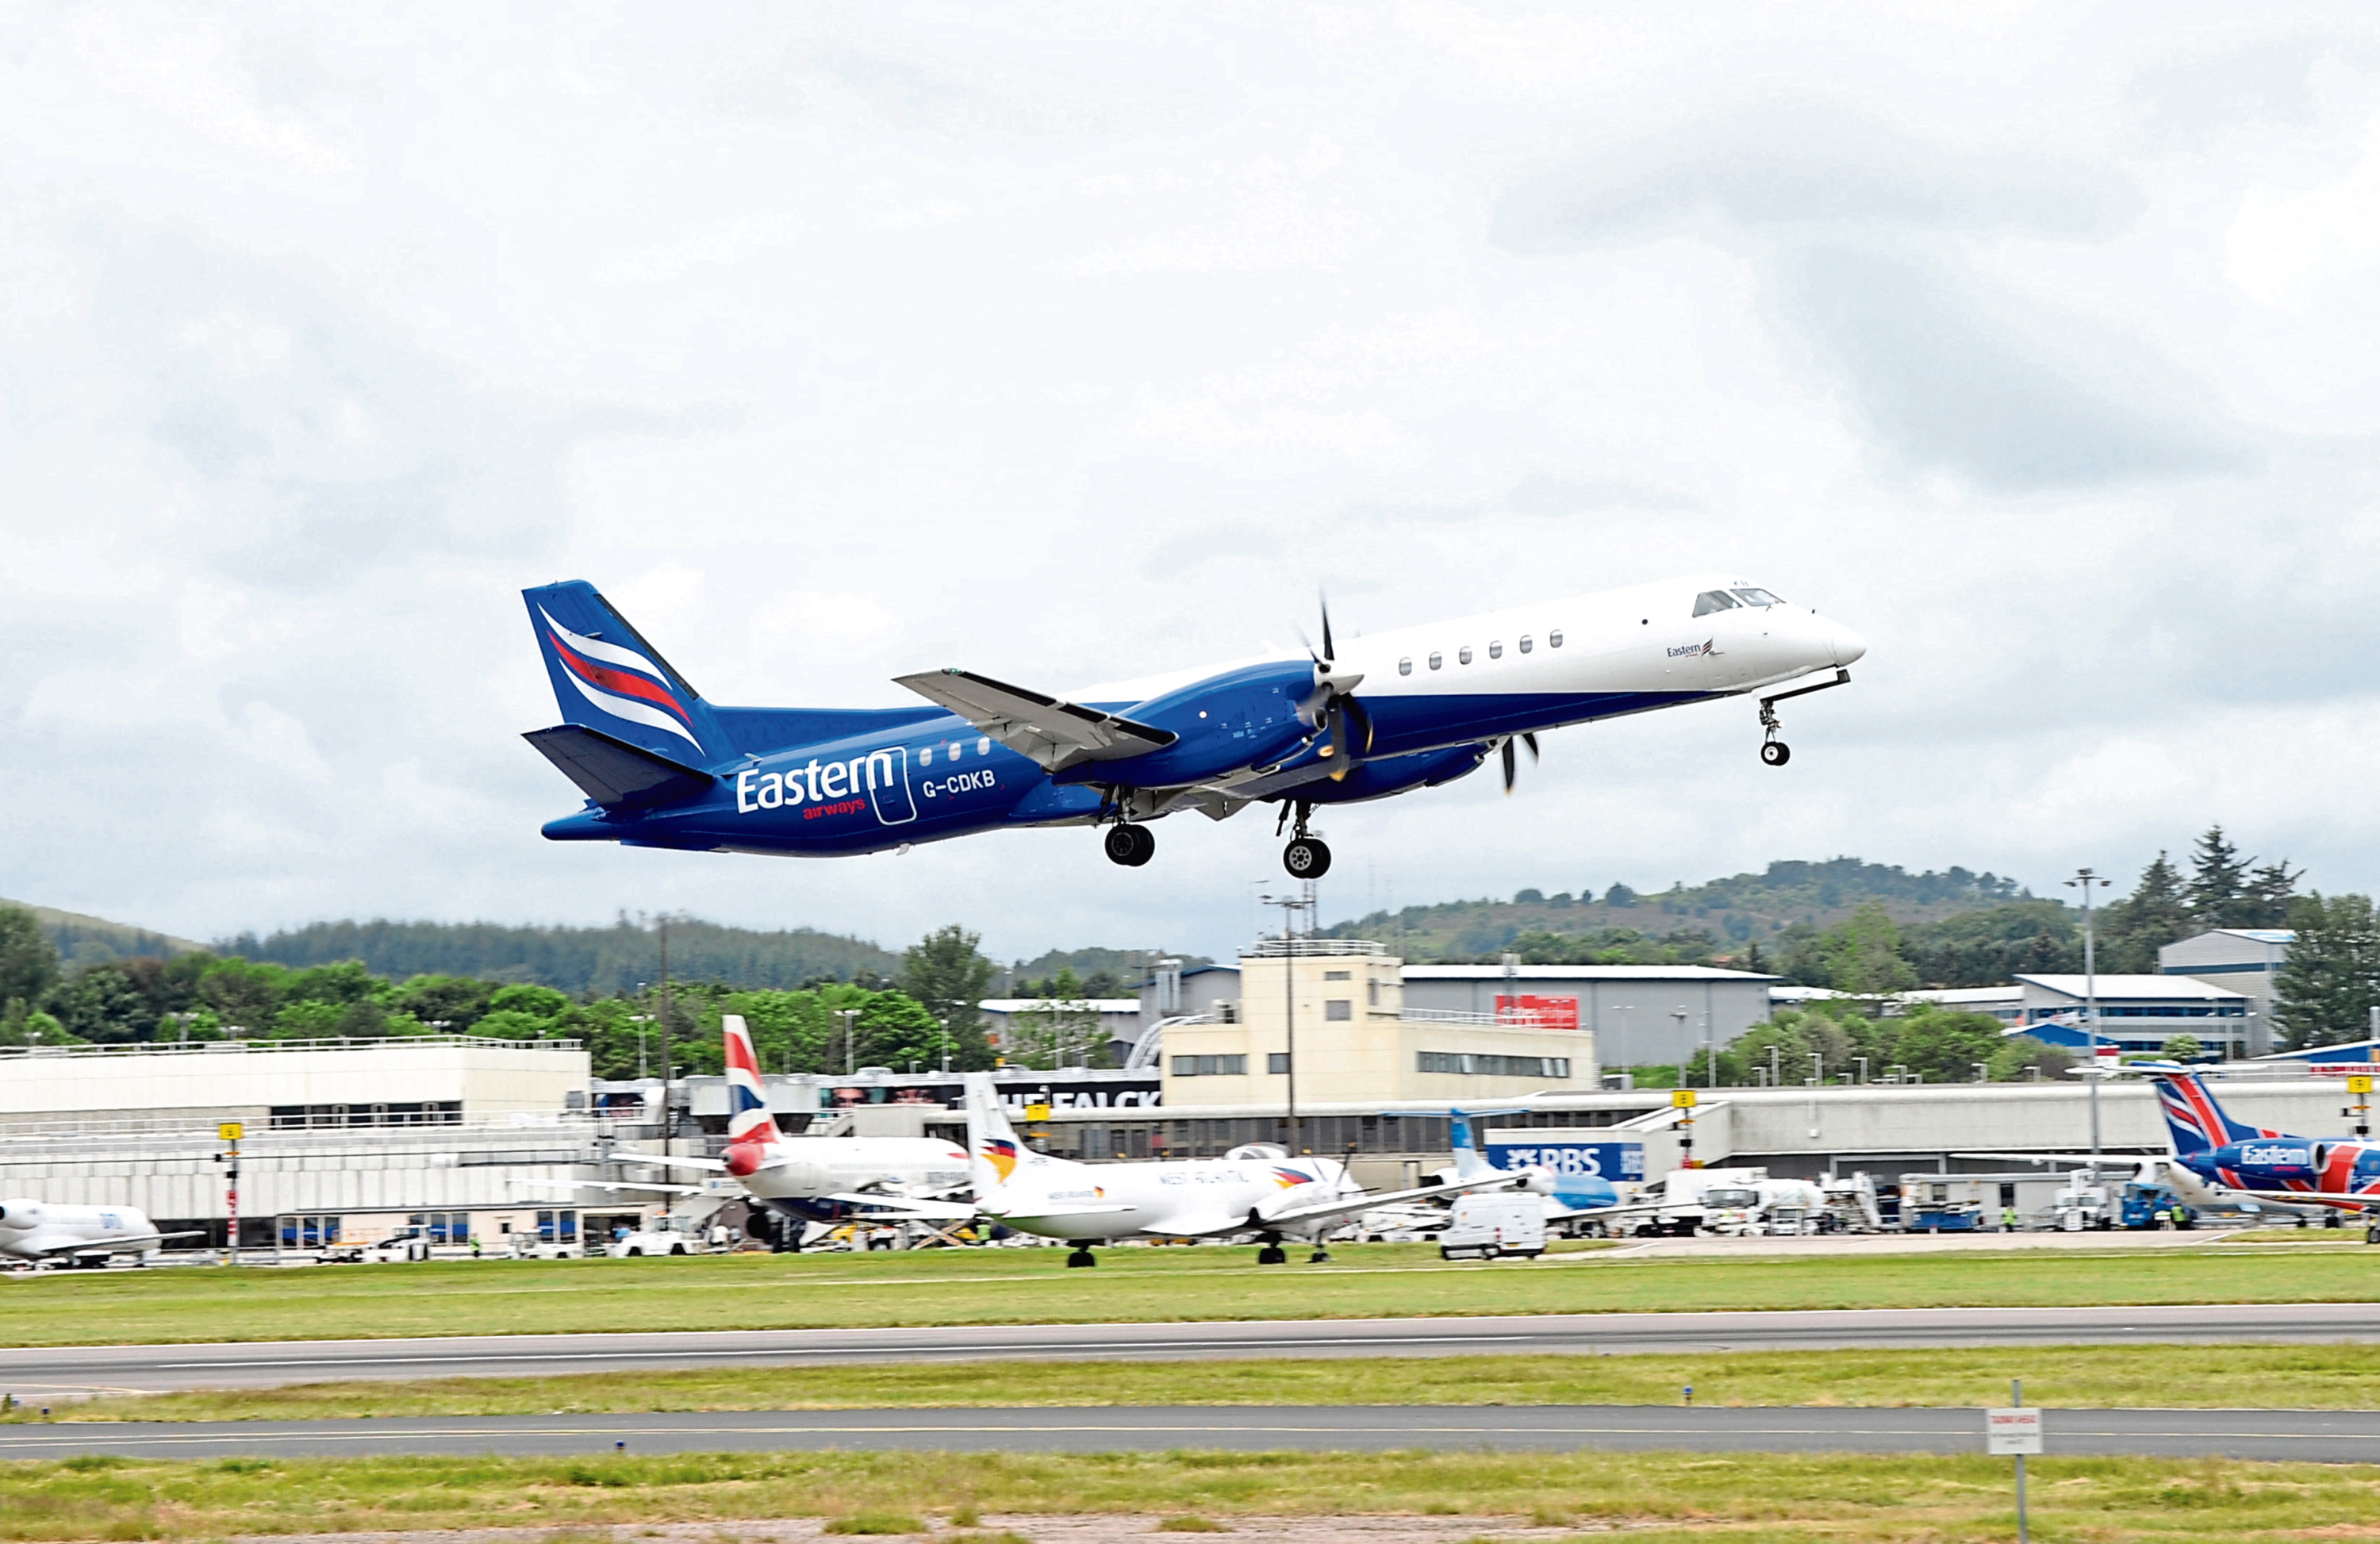 An Eastern Airways aircraft takes off from Aberdeen